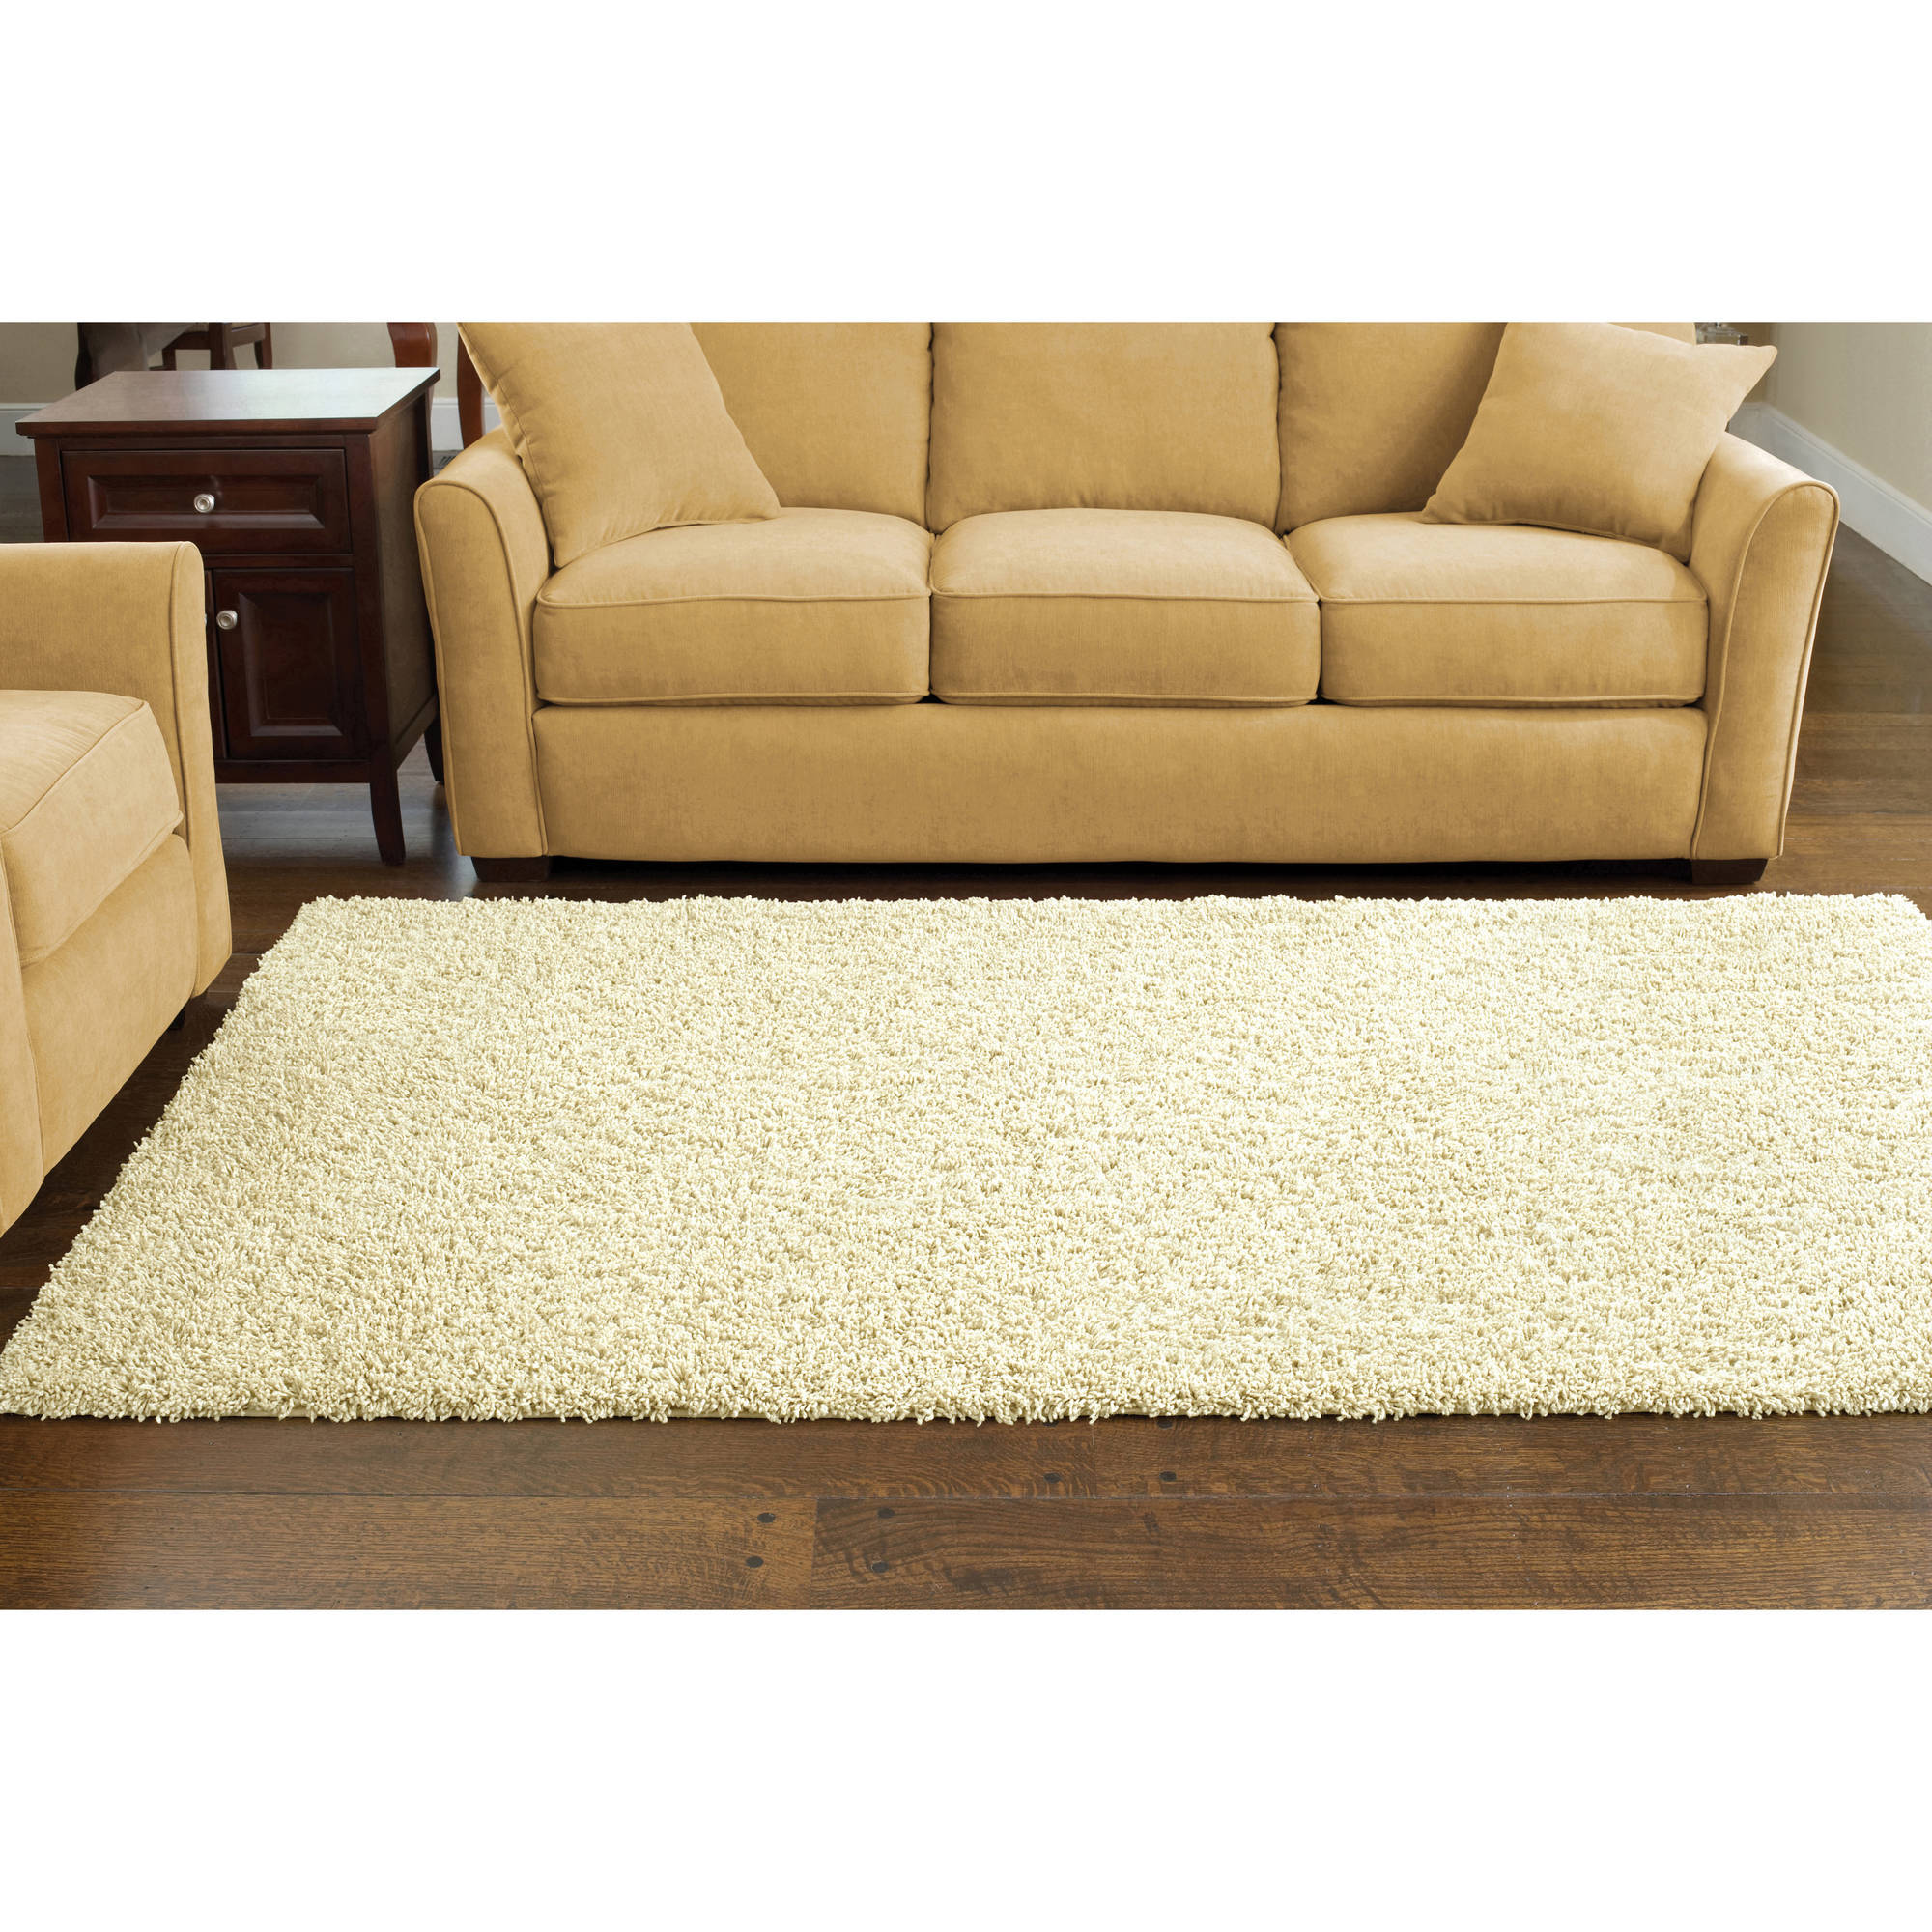 Mohawk Home Decorative Habitat Shag Tufted Area Rug